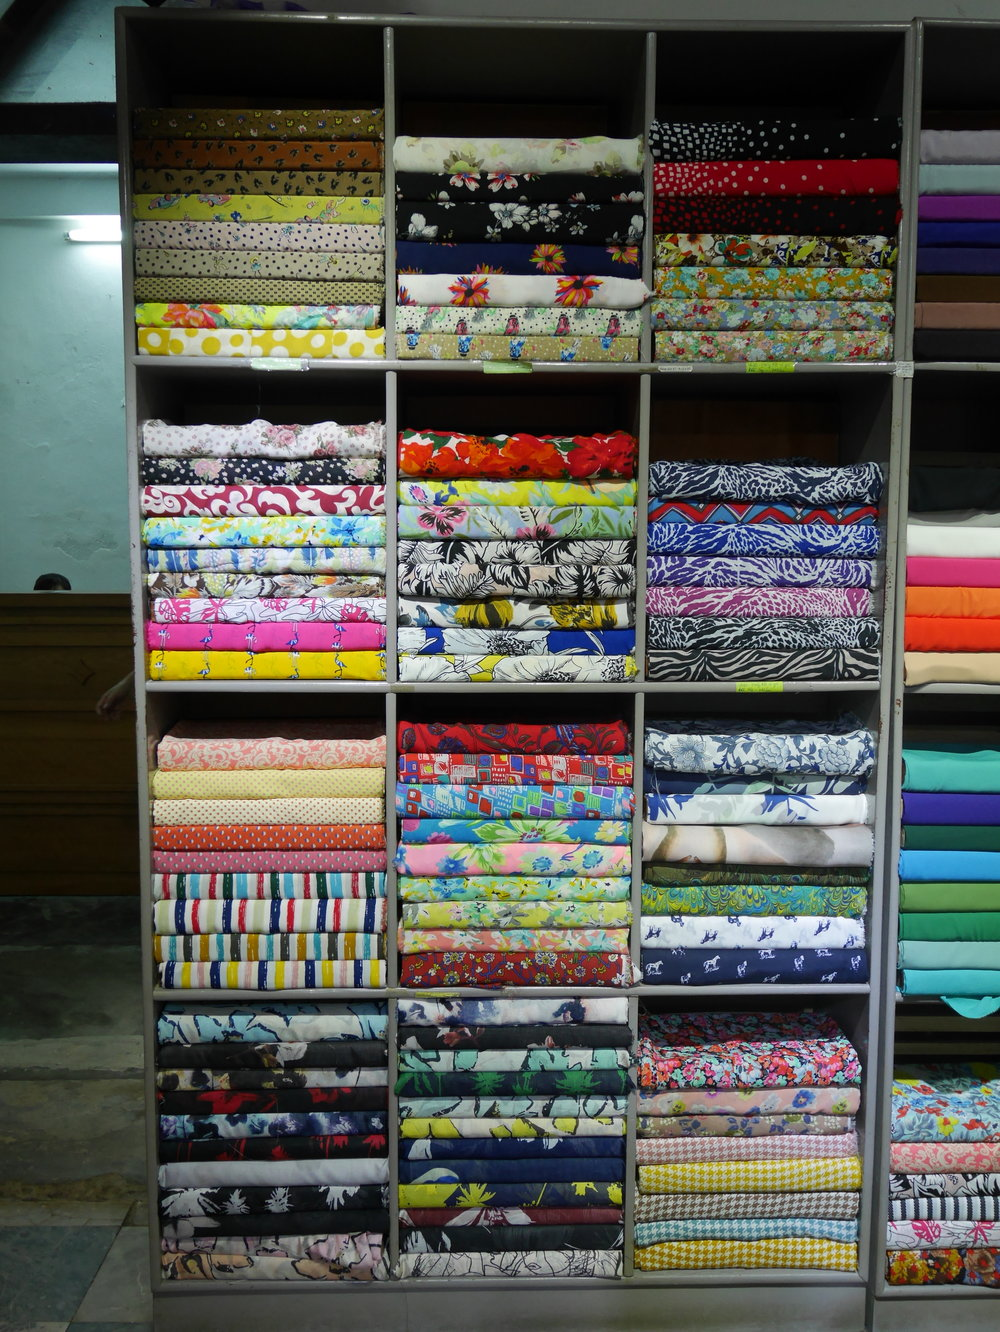 shelves and shelves of fabric to choose from